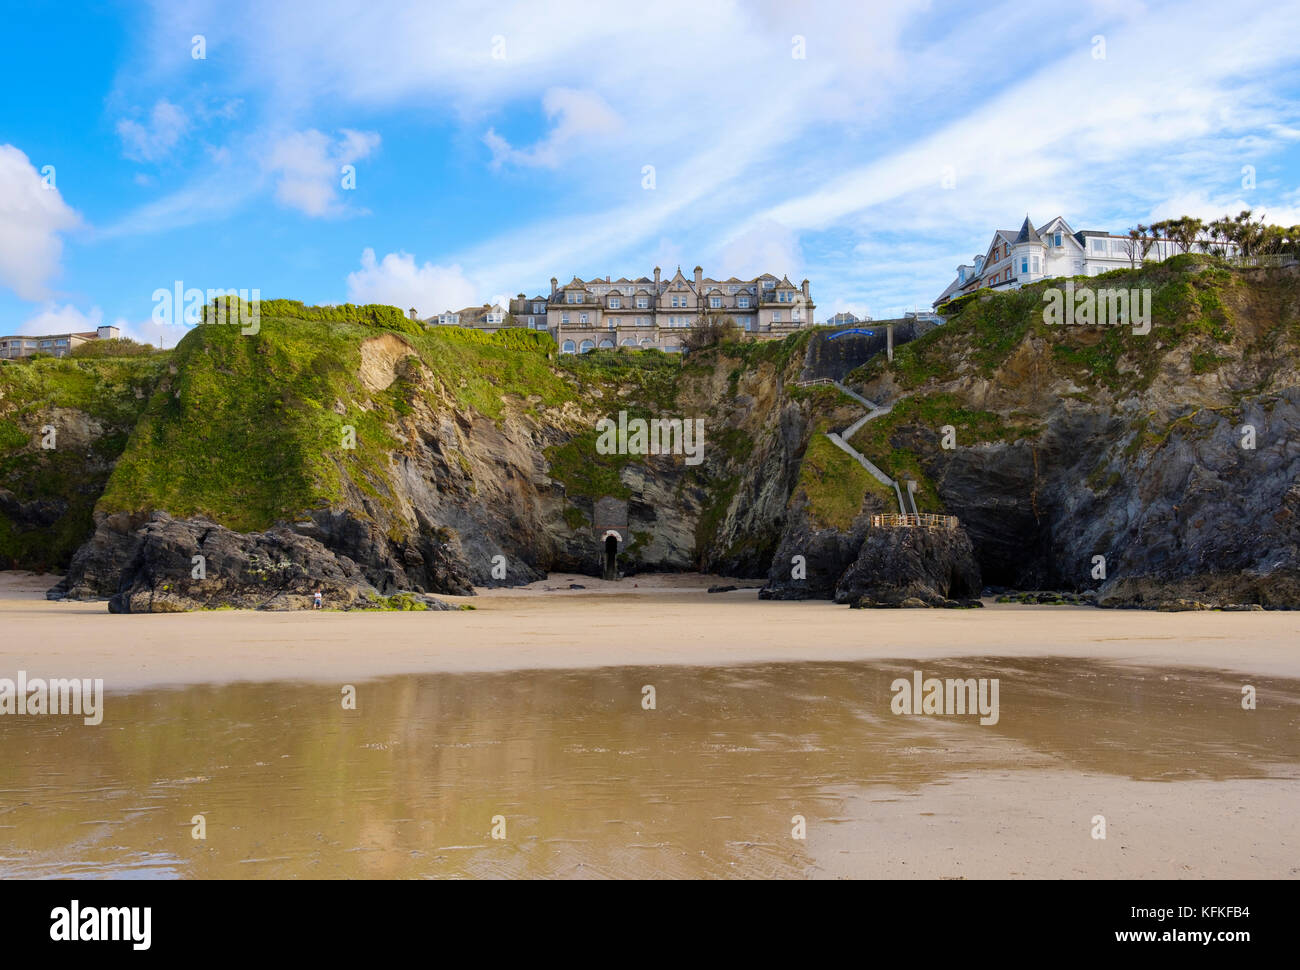 Hotel Victoria, Newquay, Cornwall, England, Great Britain - Stock Image